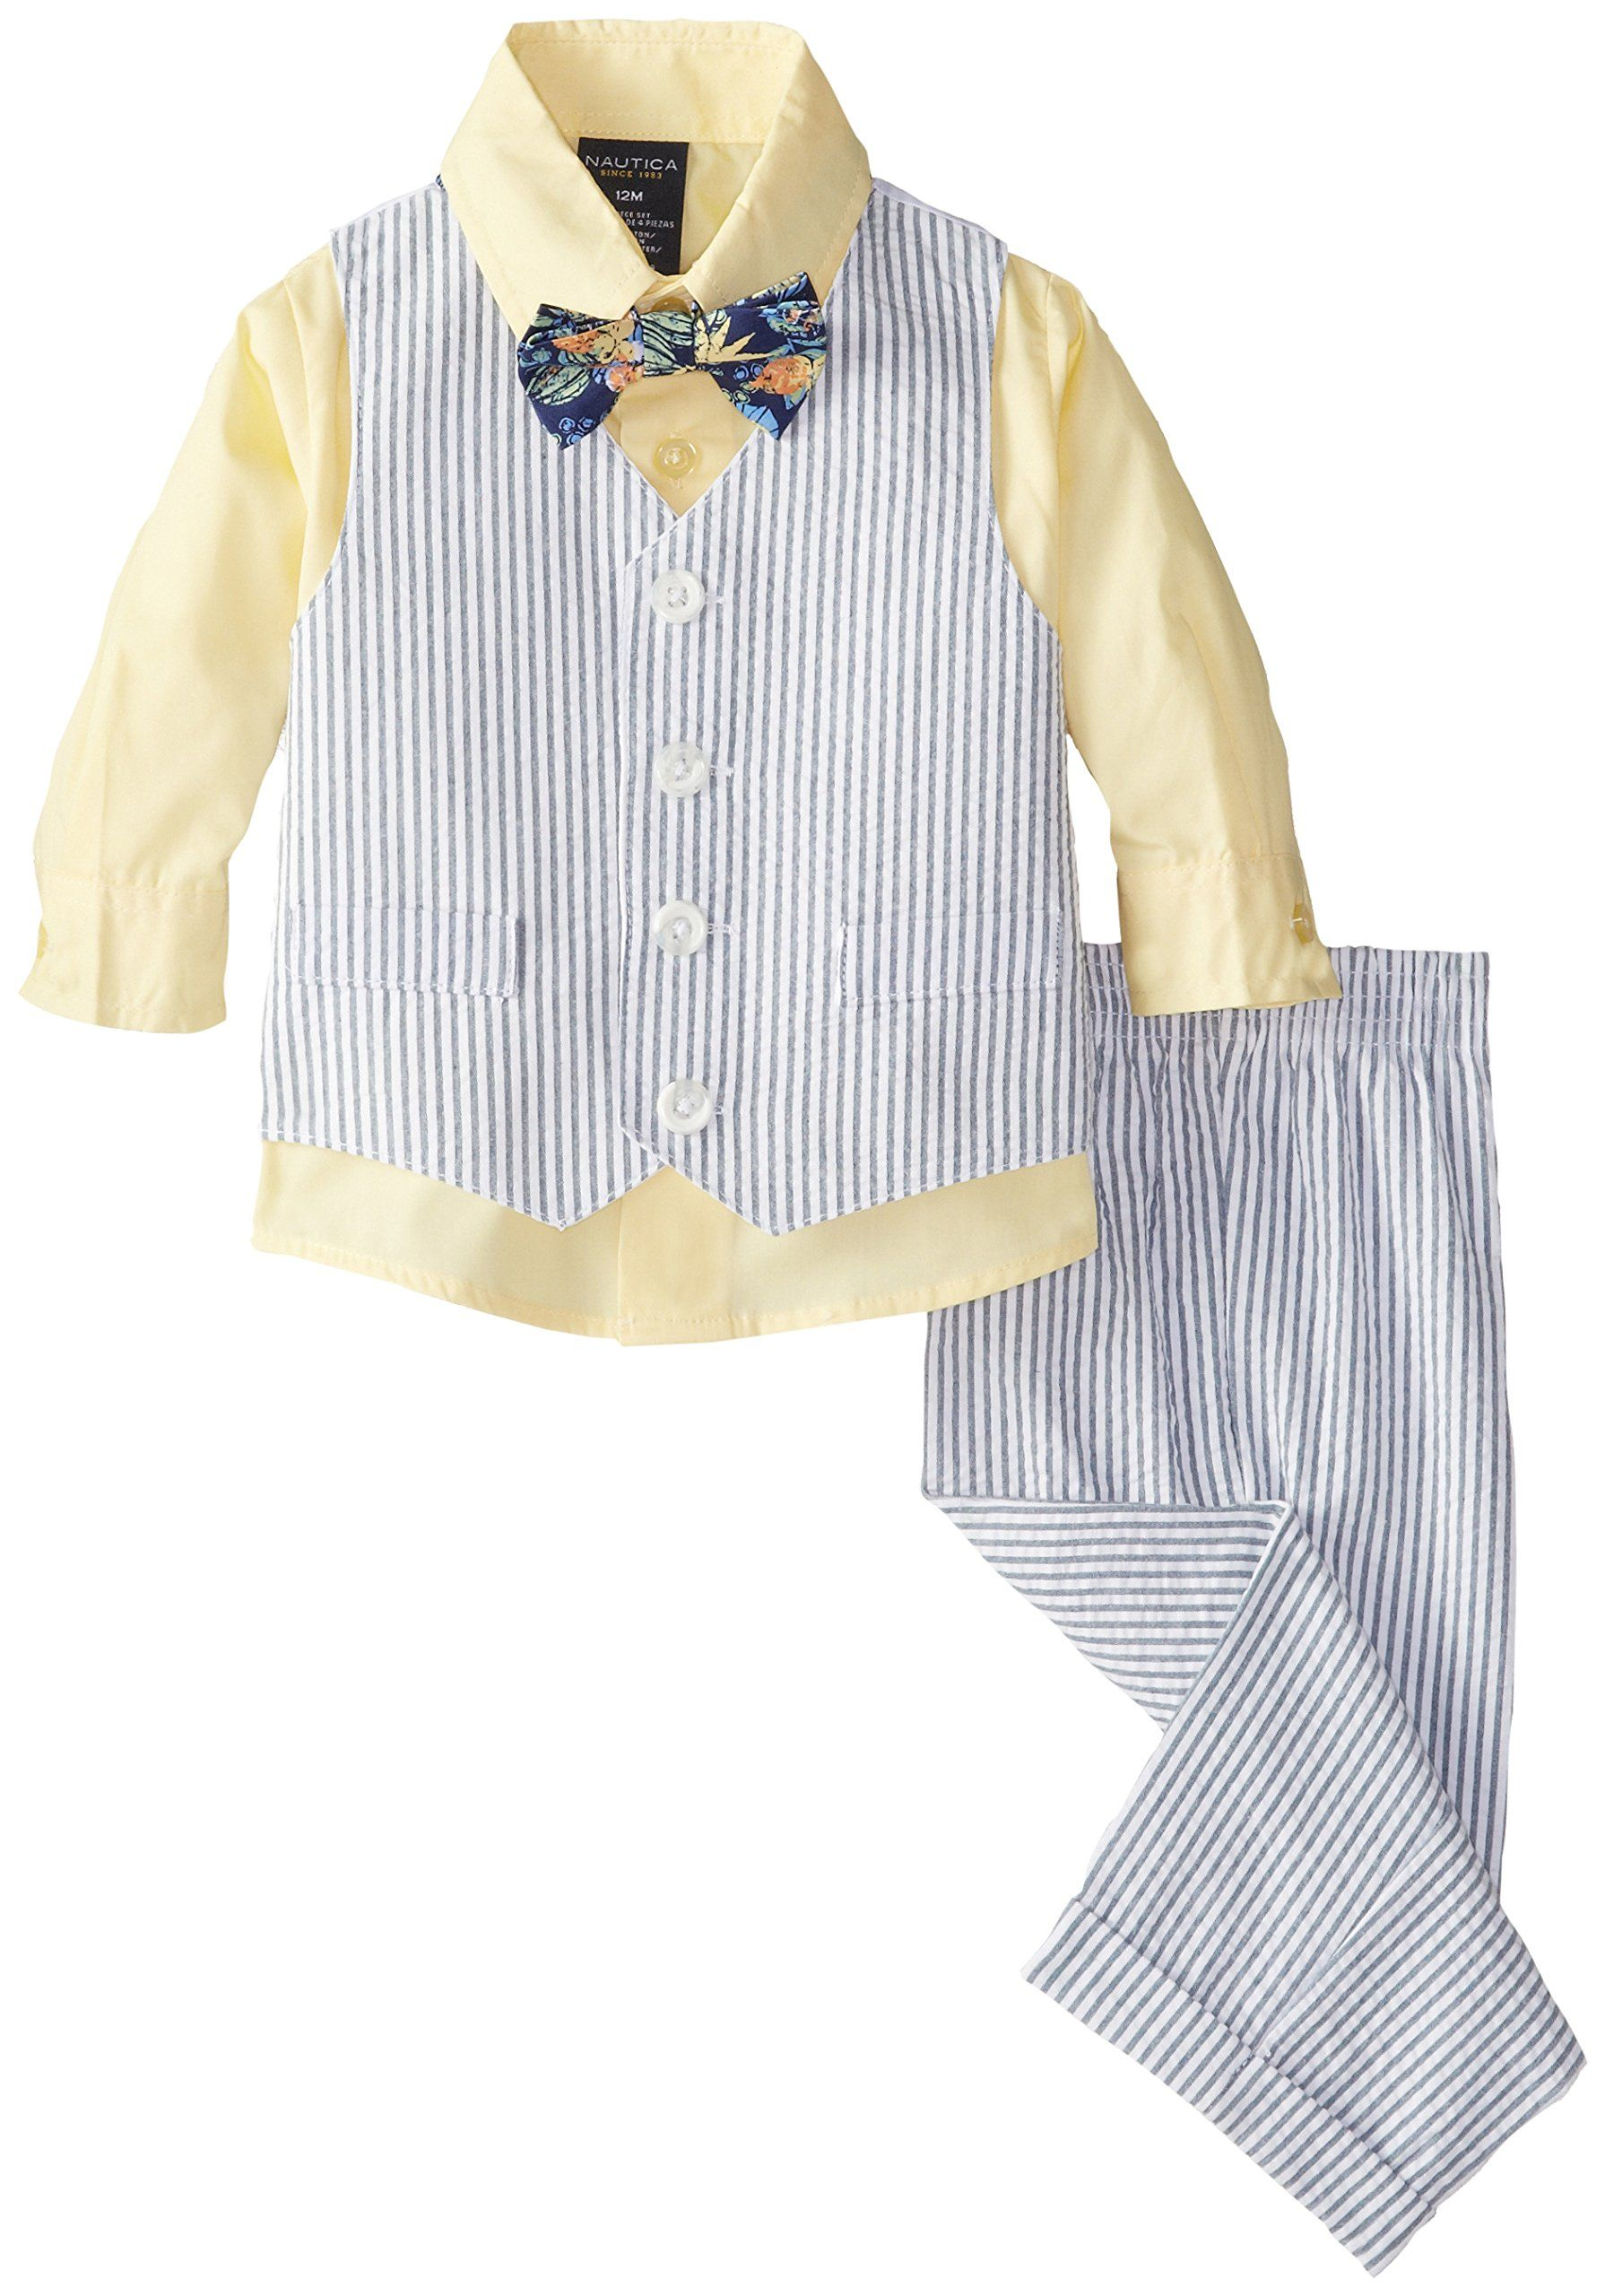 Nautica Baby Boys' Seersucker Set, Sunny, 24 Months. Three-piece dress set featuring matching seersucker vest and pant with button-front shirt. Includes coordinating bow-tie.